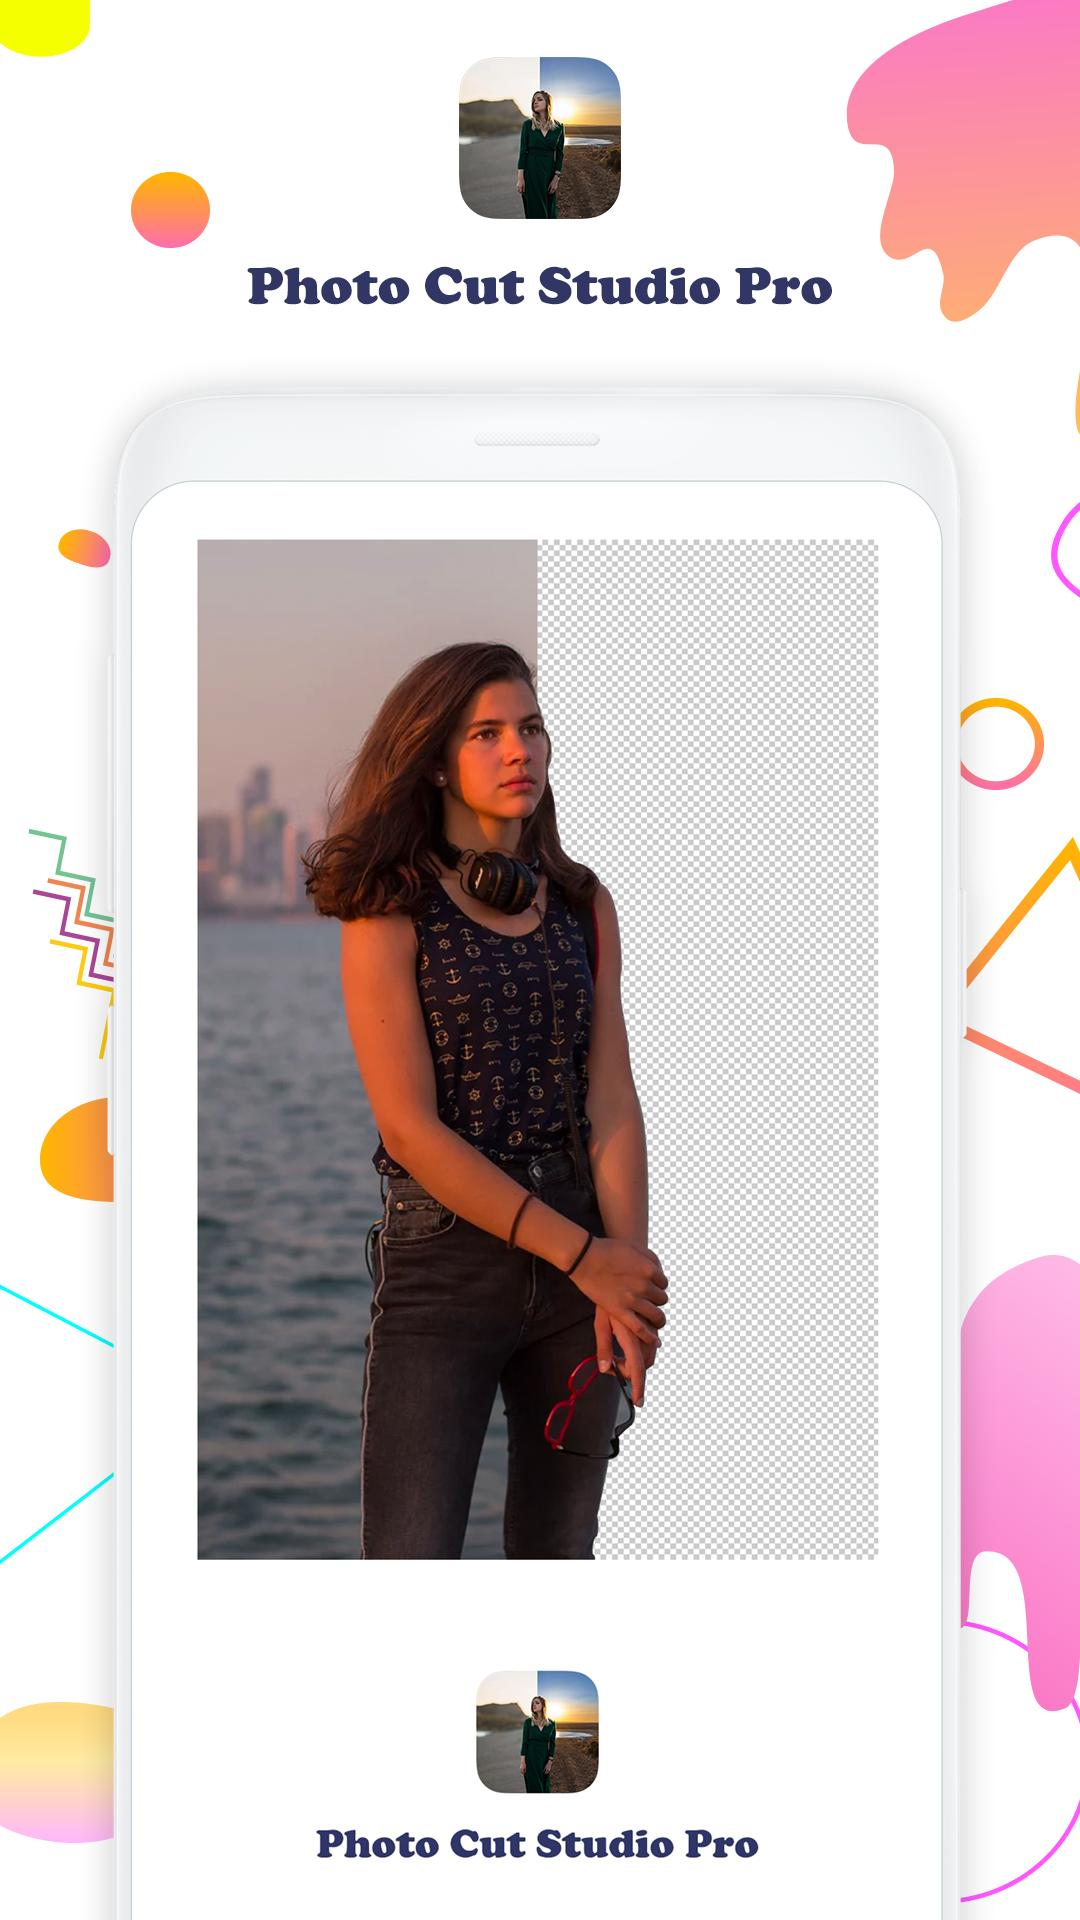 Photo Cut Studio Pro for Android - APK Download